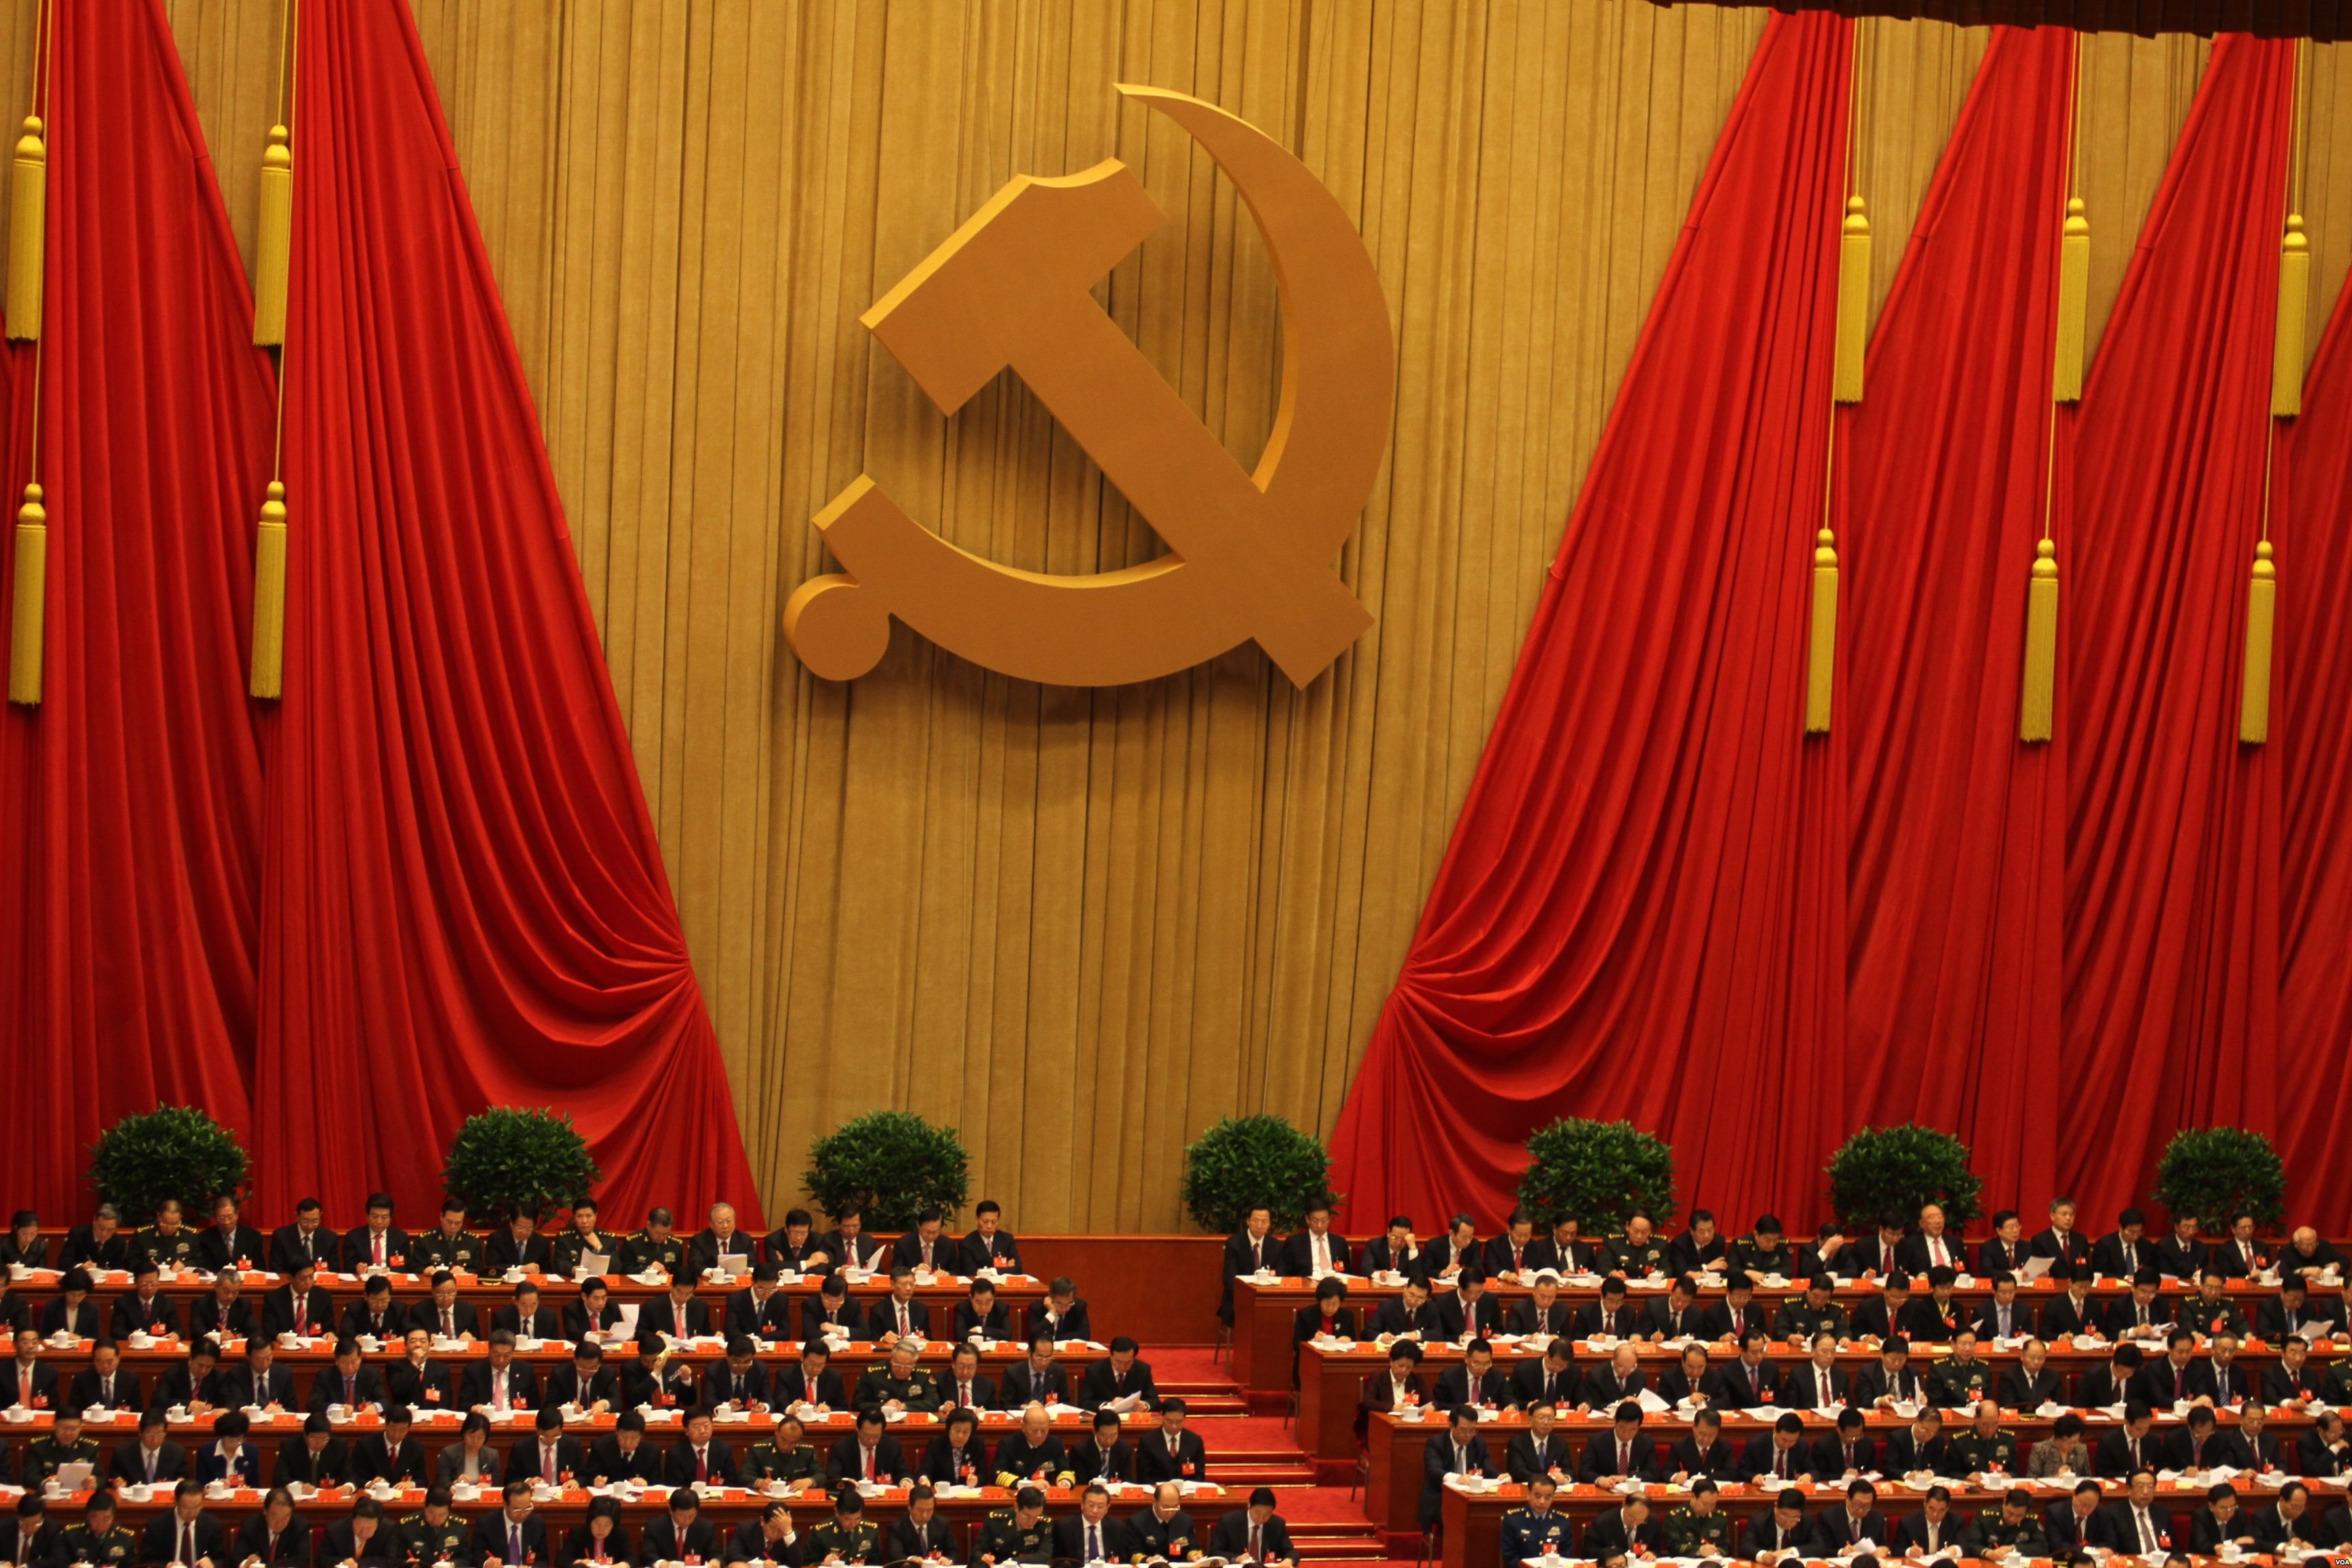 Fifth Plenary Session of 19th CPC Central Committee and the Dreams of a Technological Superpower